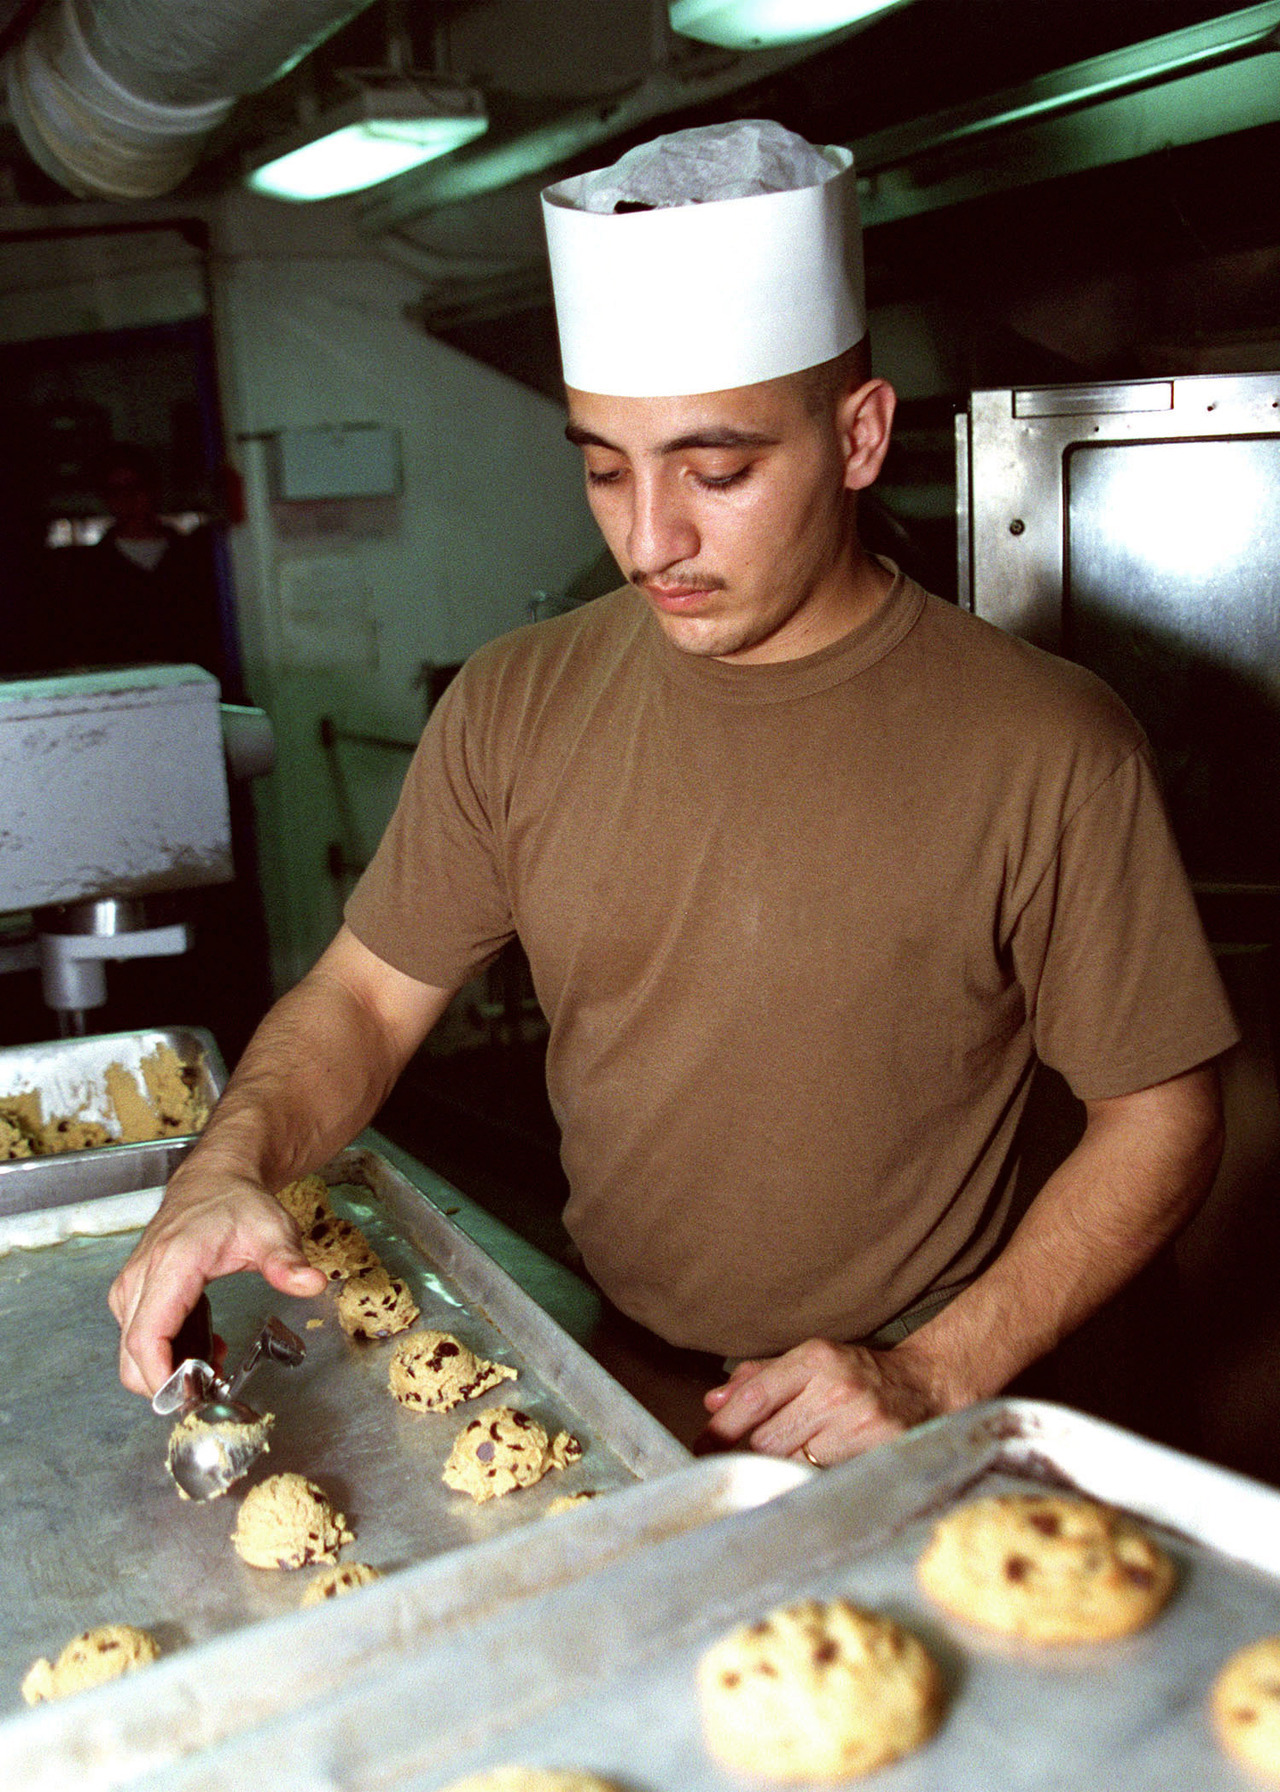 December 4th is National Cookie Day!   U.S. Marine Corps CPL. Victor Medrano prepares chocolate chip cookies for the crew of the aircraft carrier USS NIMITZ (CVN 68). Nimitz is deployed to the Persian Gulf in support of Operation Southern Watch, 01/29/1998